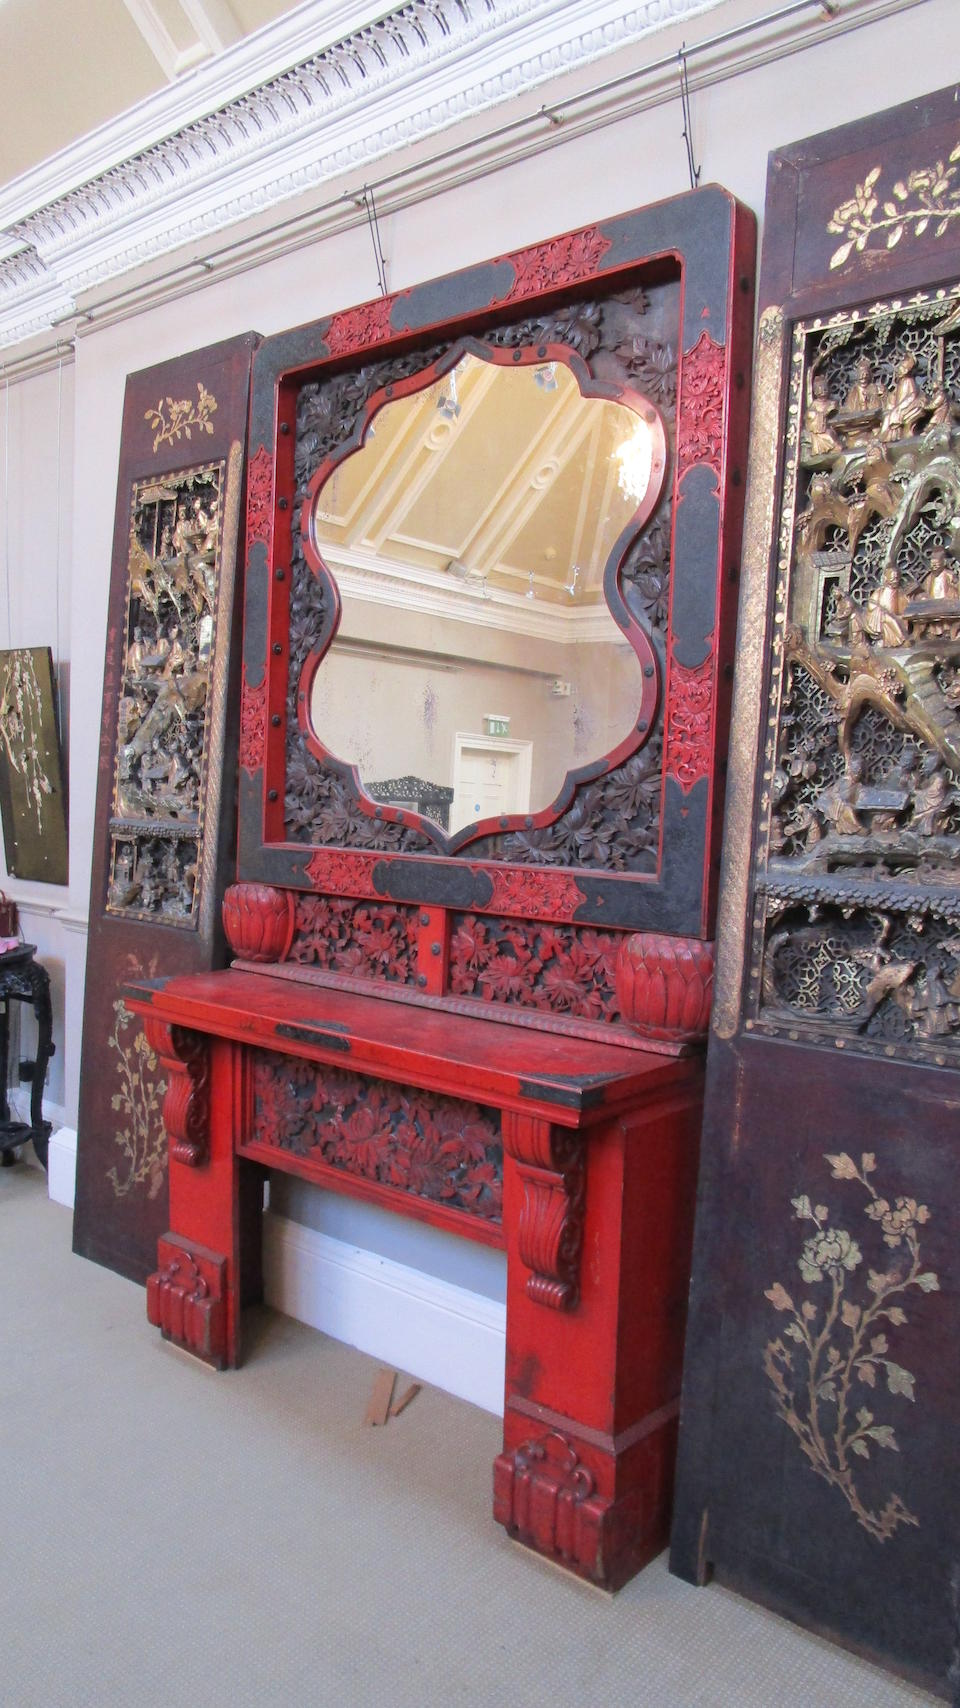 An Anglo-Japanese Carved and Red-Lacquered Chimney-piece and Mirrored Overmantel POSSIBLY BY THOMAS JECKYLL (ENGLISH, 1827-1881); CIRCA 1870s